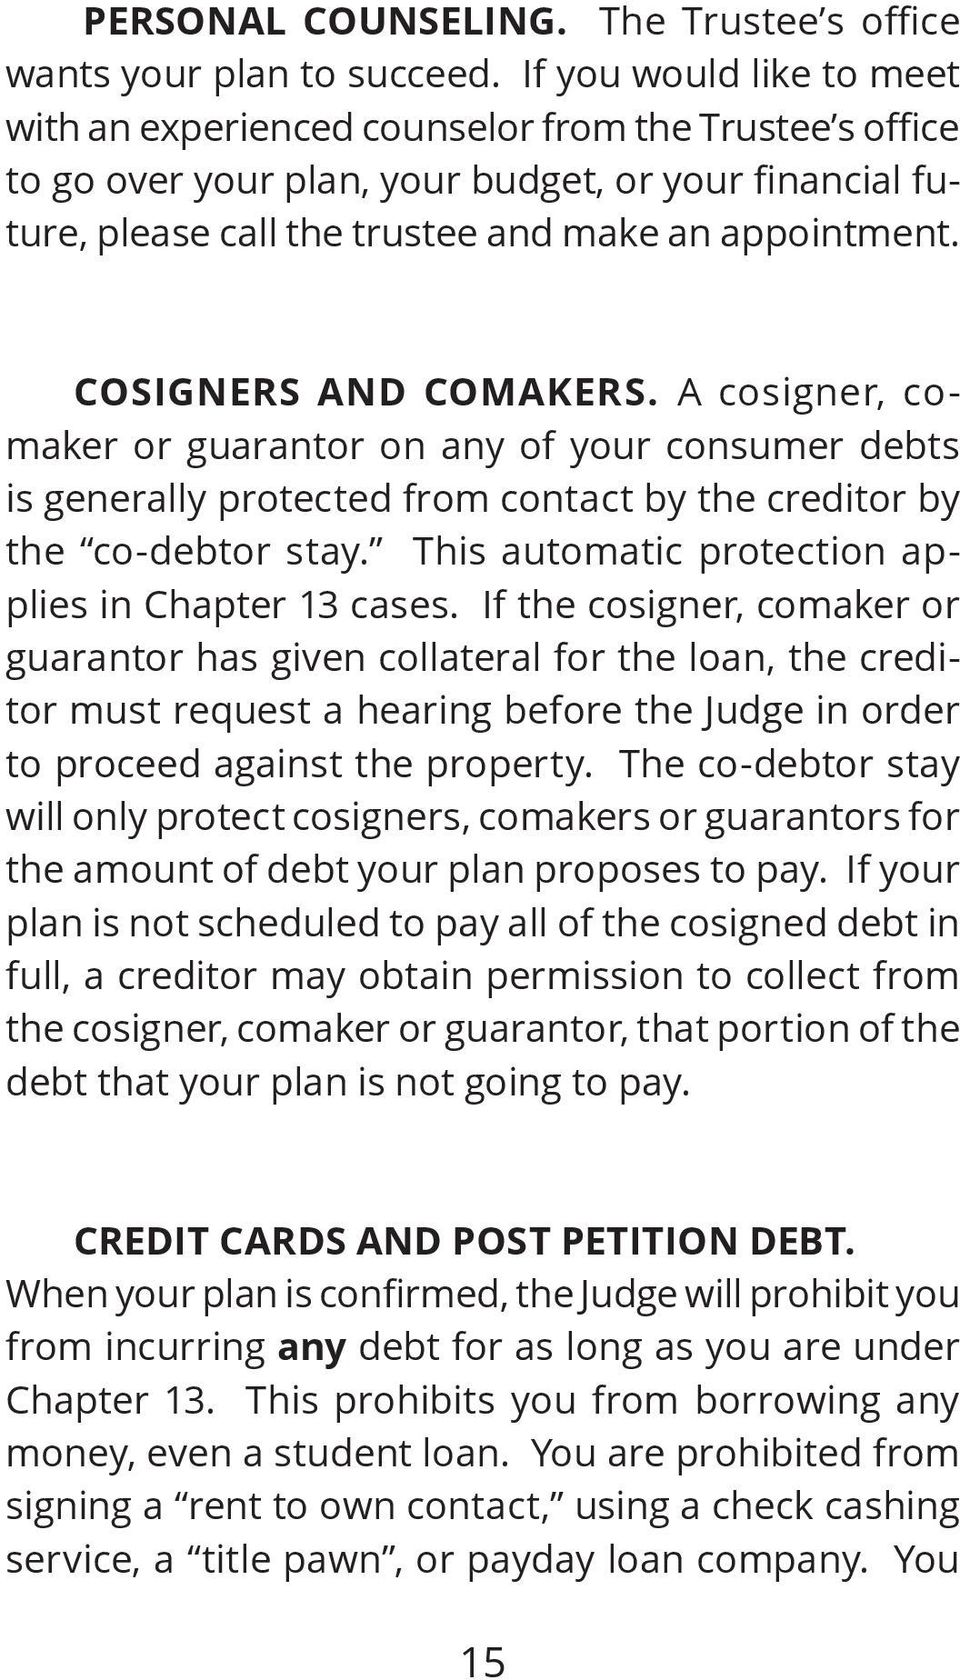 COSIGNERS AND COMAKERS. A cosigner, comaker or guarantor on any of your consumer debts is generally protected from contact by the creditor by the co-debtor stay.